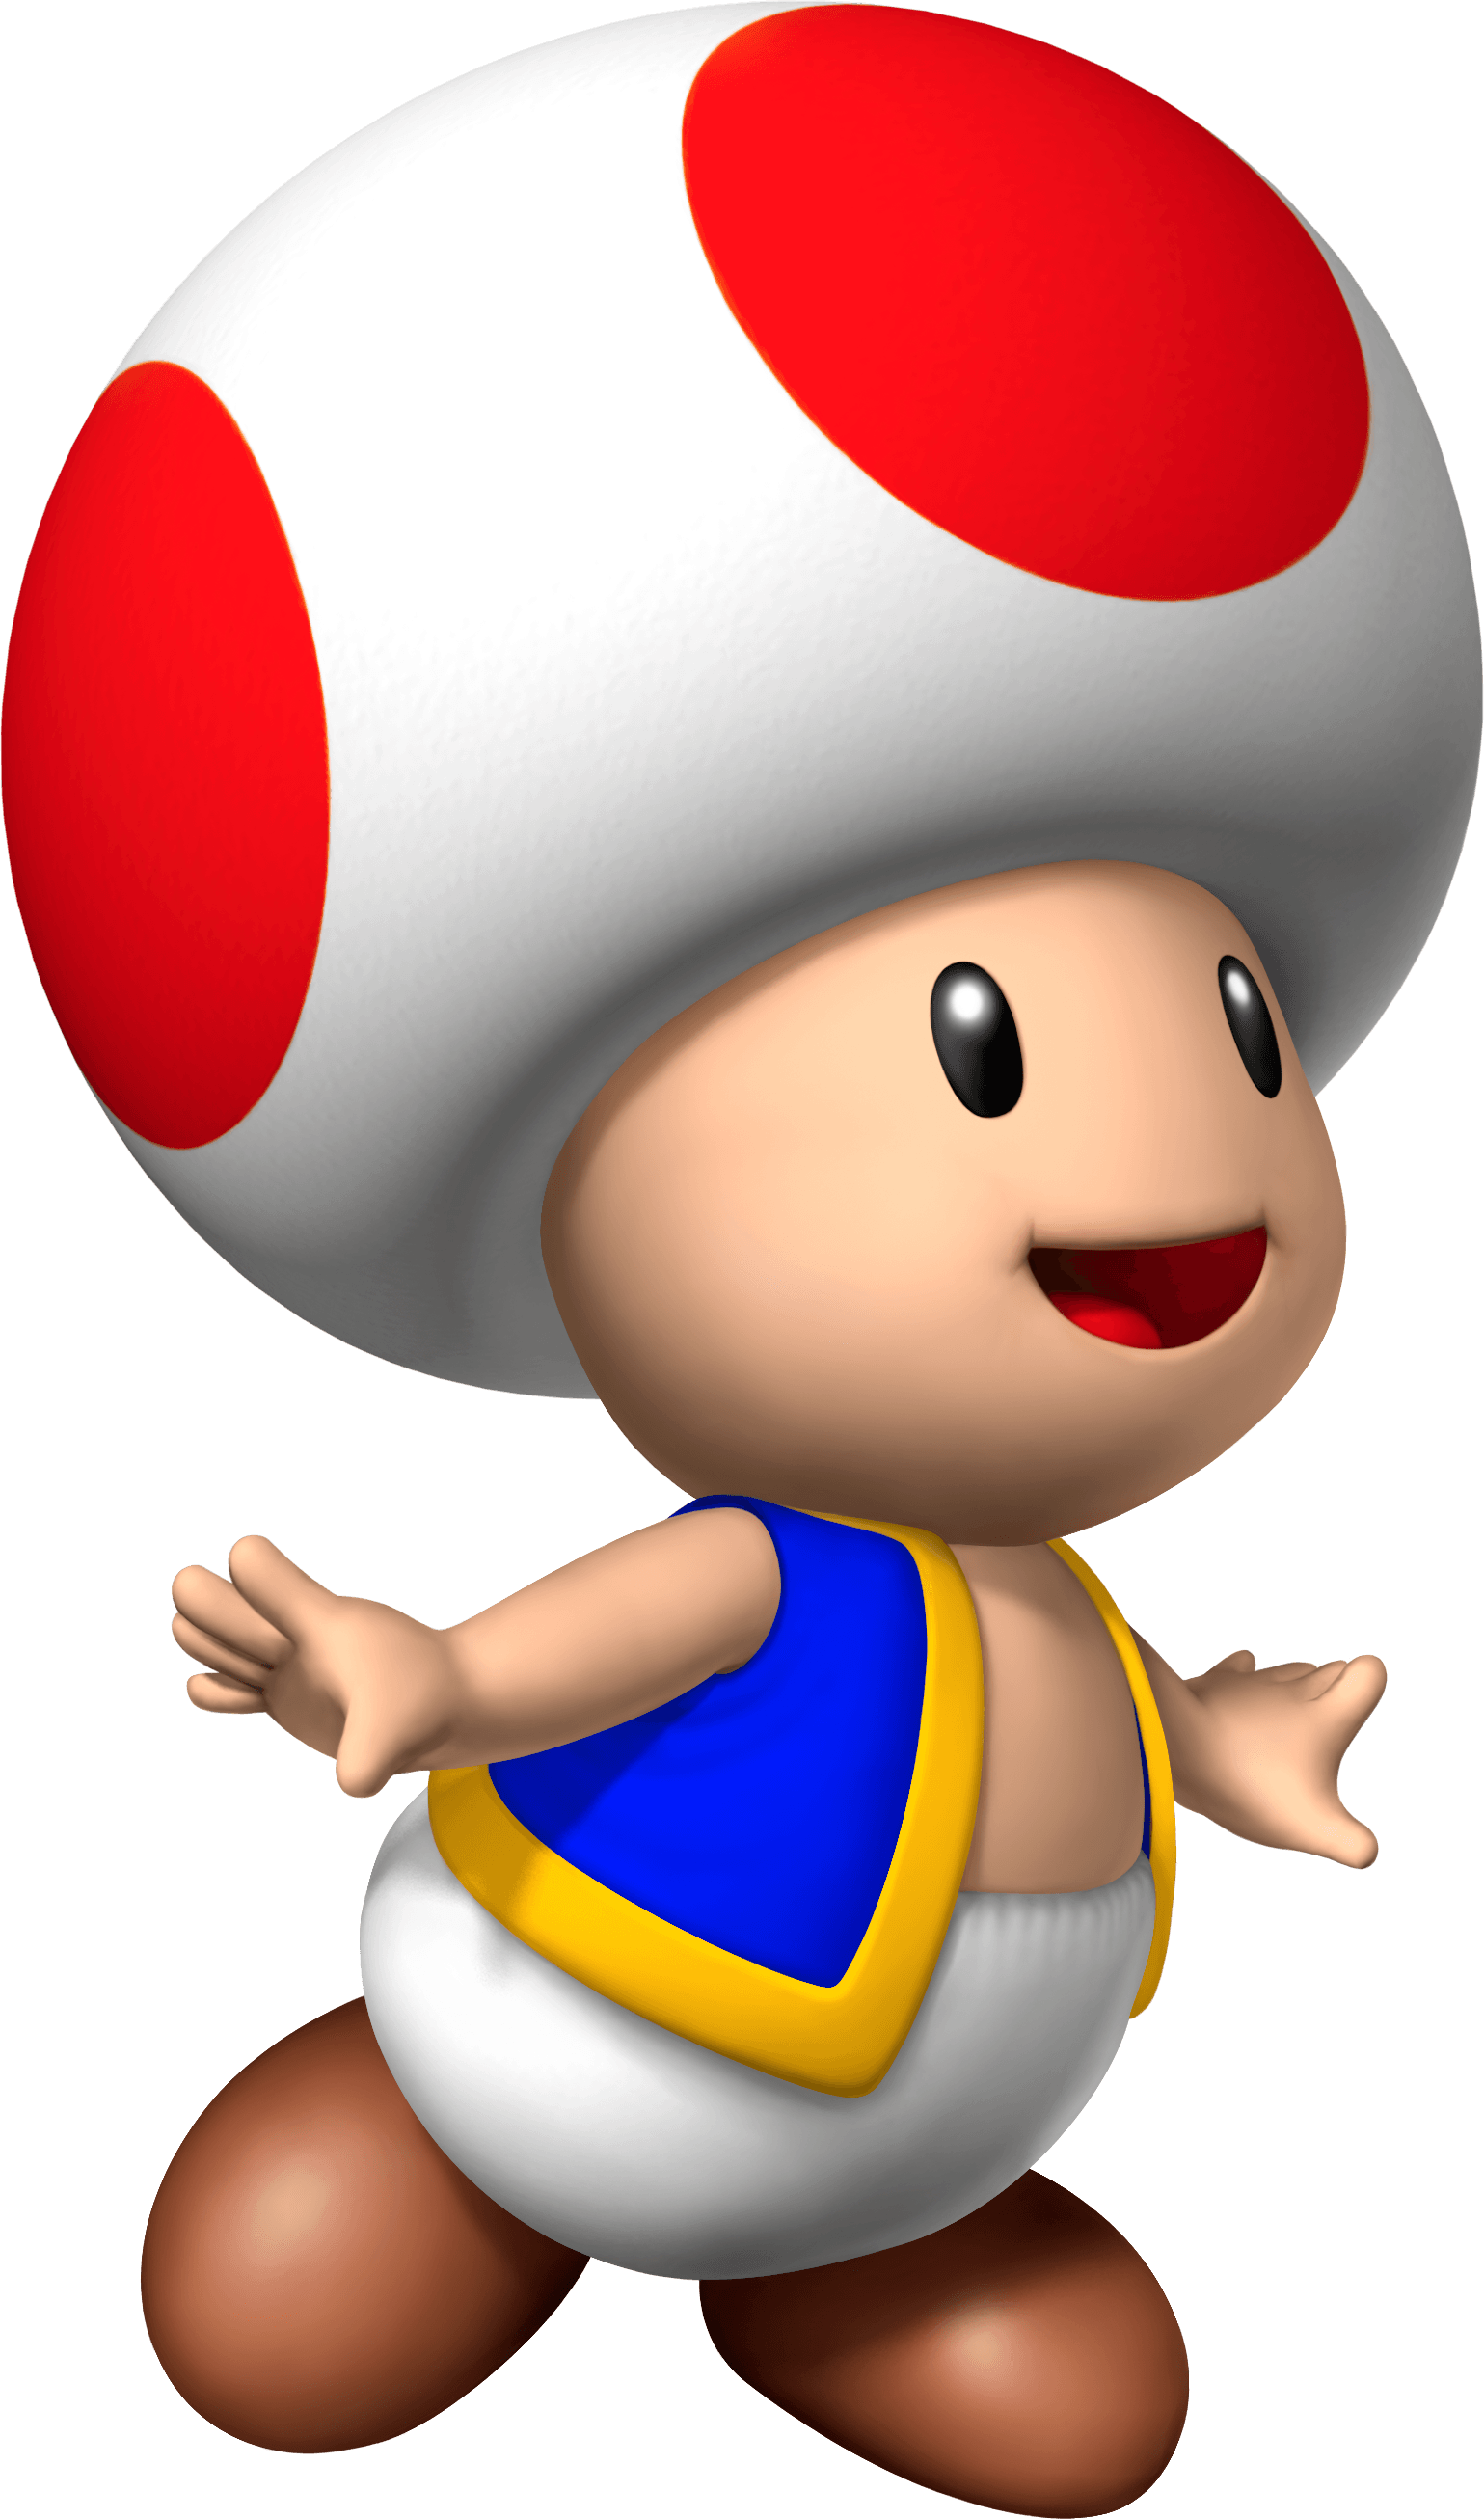 banner library library Party wii artwork including. Toad mario clipart